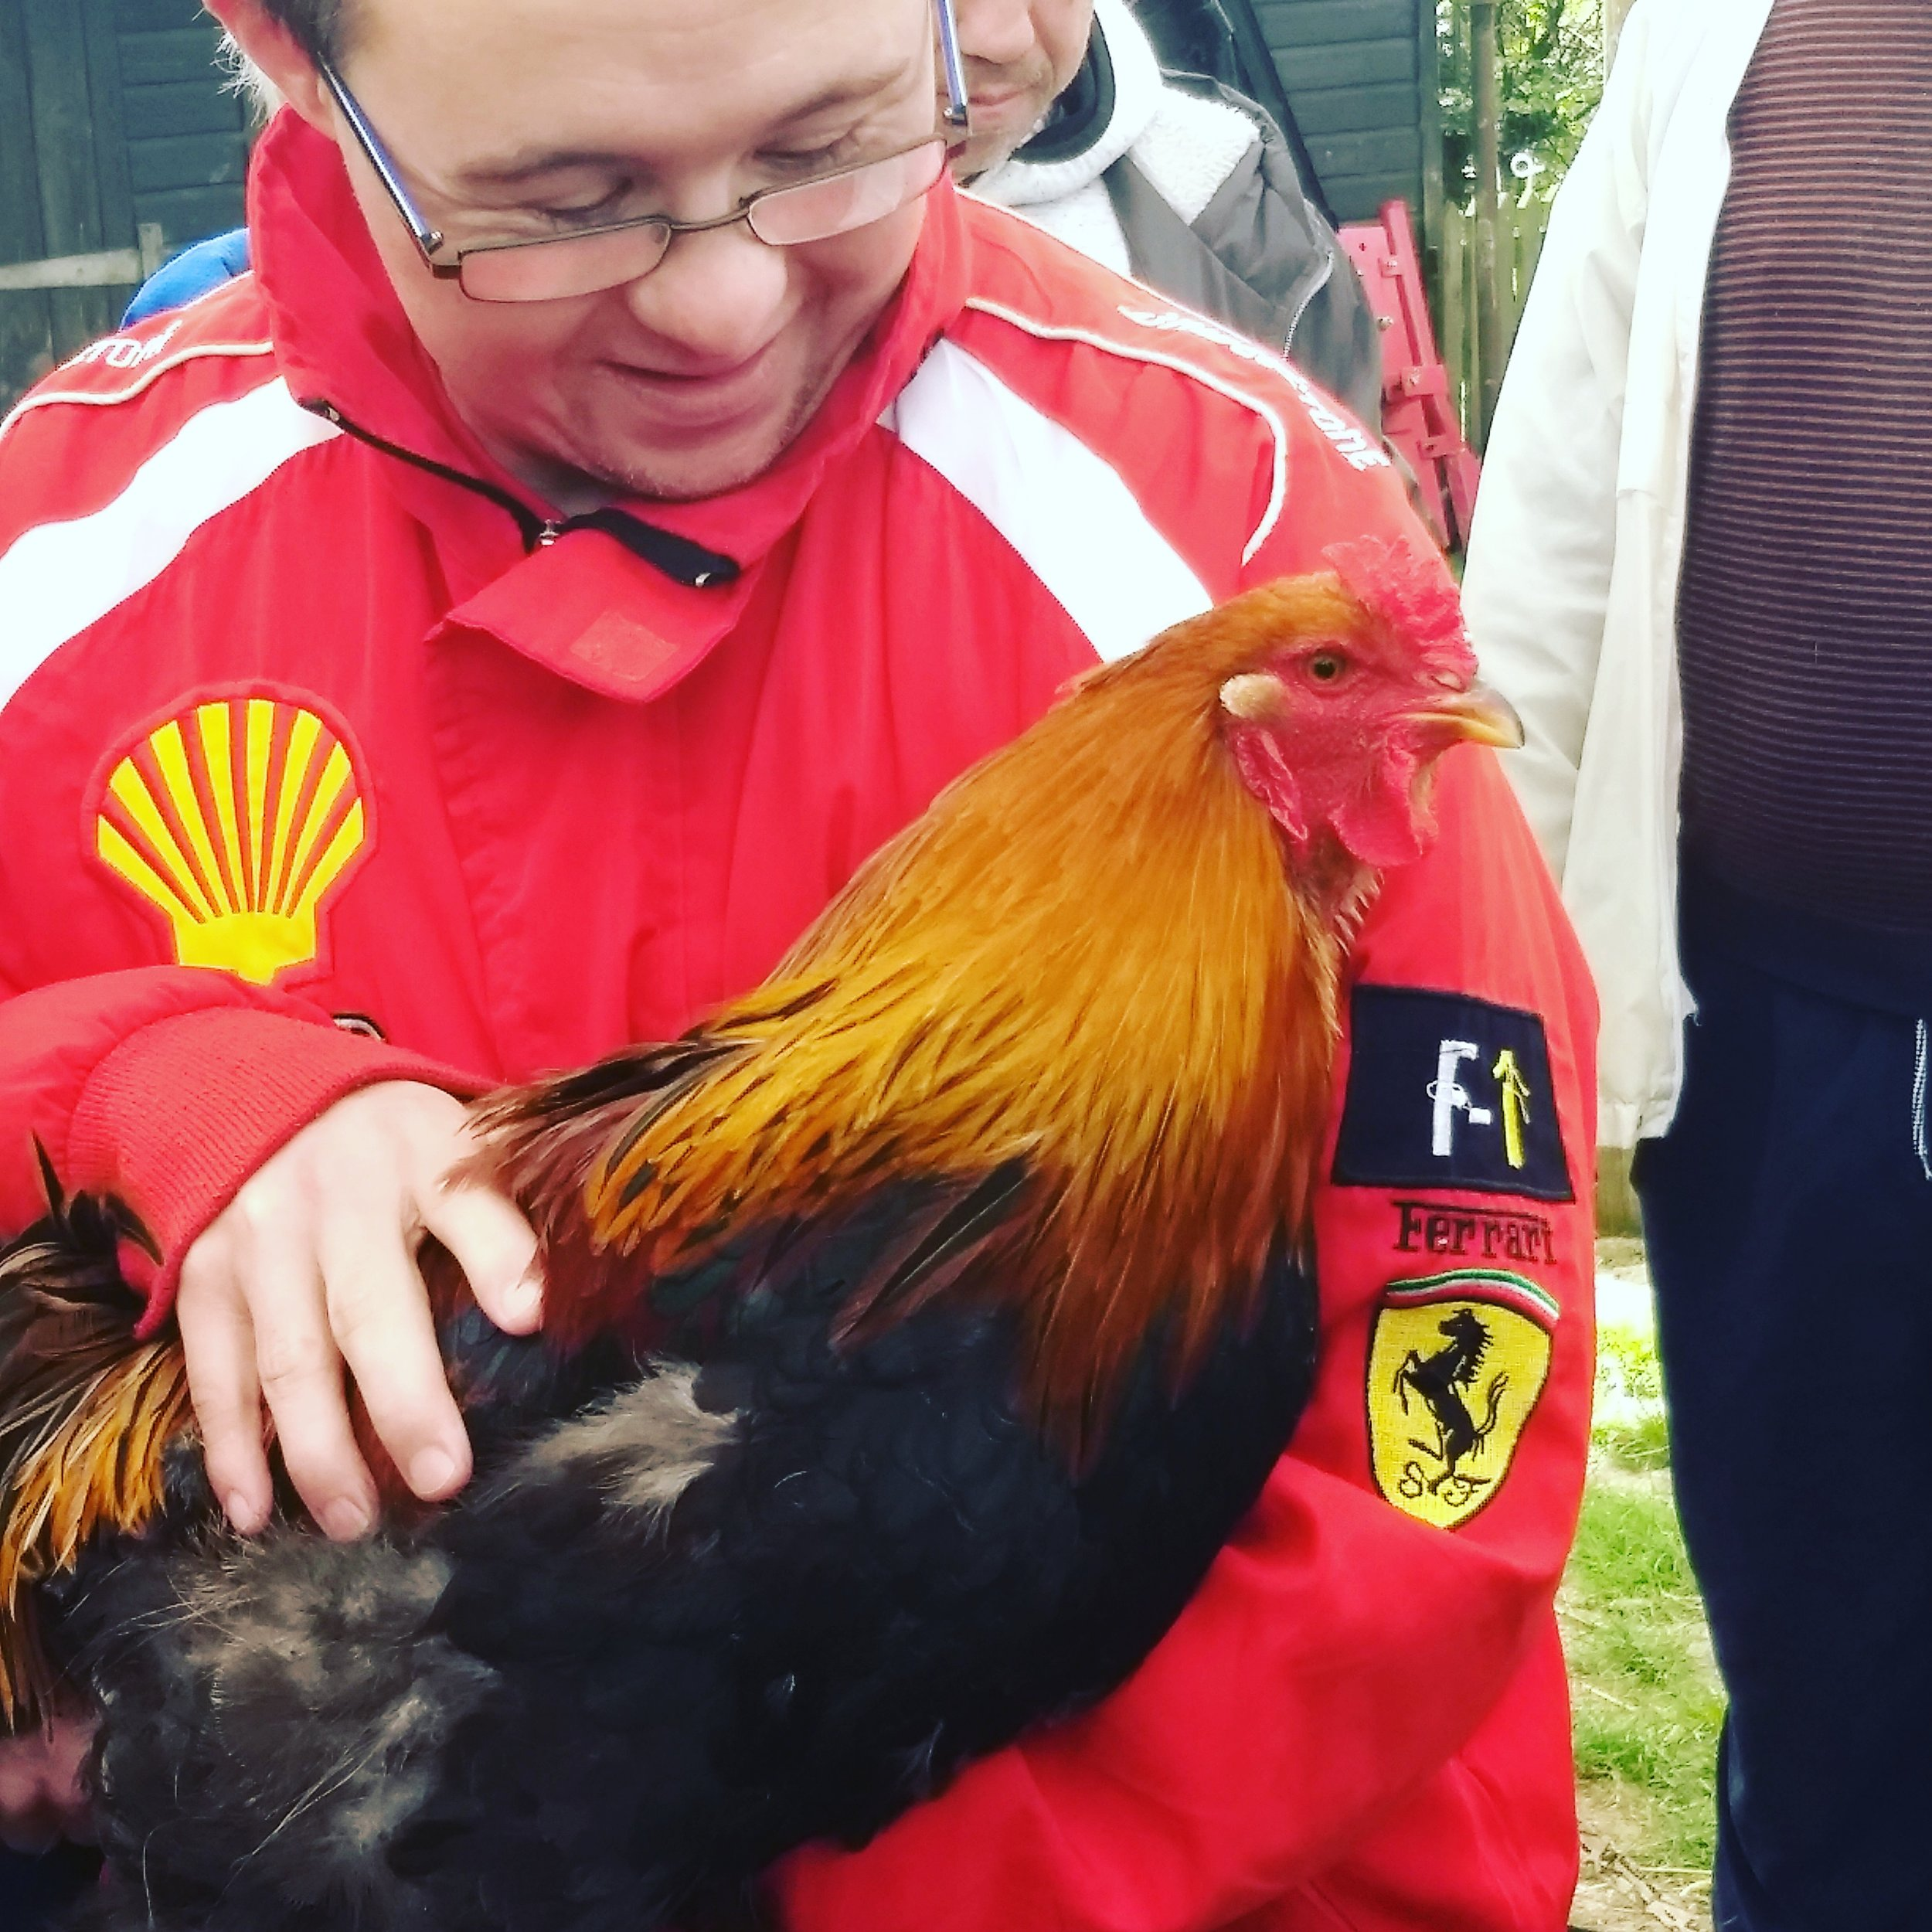 A cuddle with the cockerel